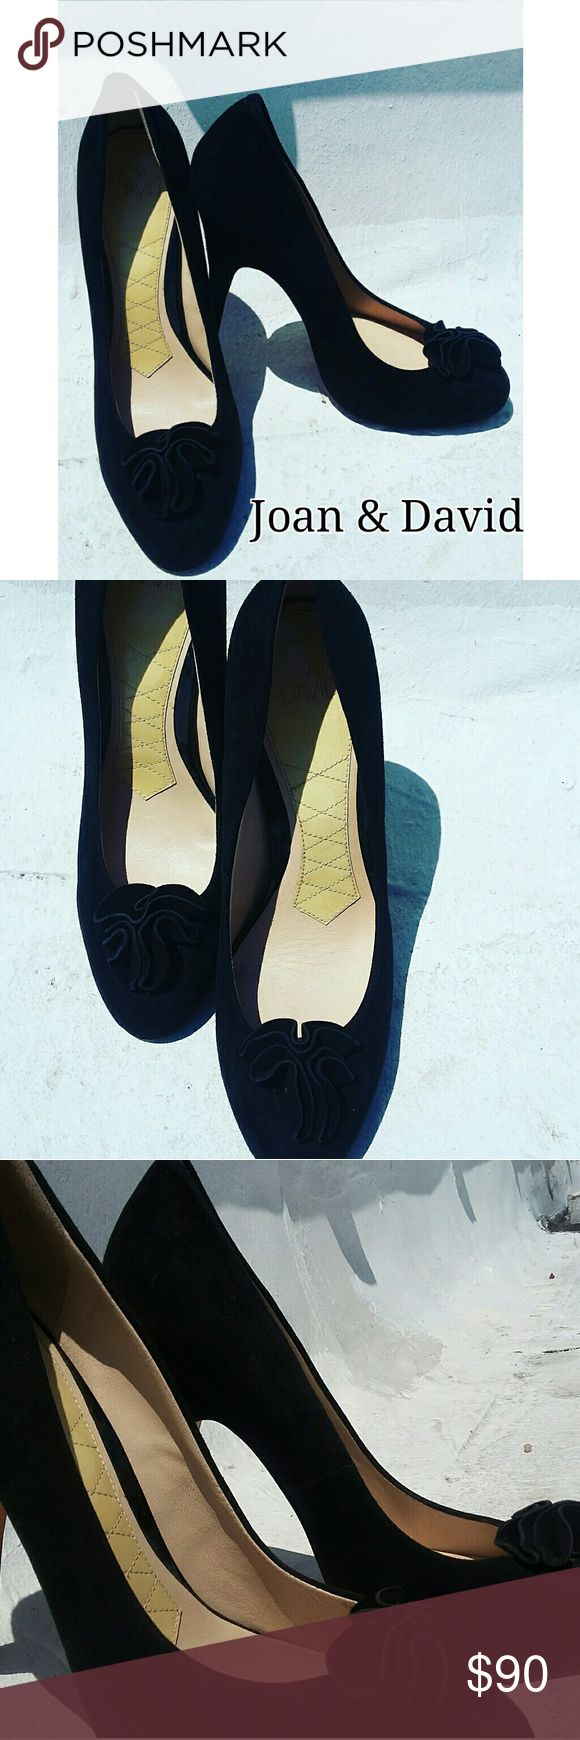 JOAN & DAVID BLACK SUEDE VALERIA PUMPS SZ 8.5 Worn once! JOAN & DAVID MADE IN ITALY CLASSIC VALERIA FLOWER CROWN SUEDE PUMPS SIZE 8.5  BUY NOW OR BUNDLE AND SAVE  WE LOVE OFFERS!  SUGGESTED SELLER  SAME DAY SHIPPING  SHOP WITH CONFIDENCE ???? Joan & David Shoes